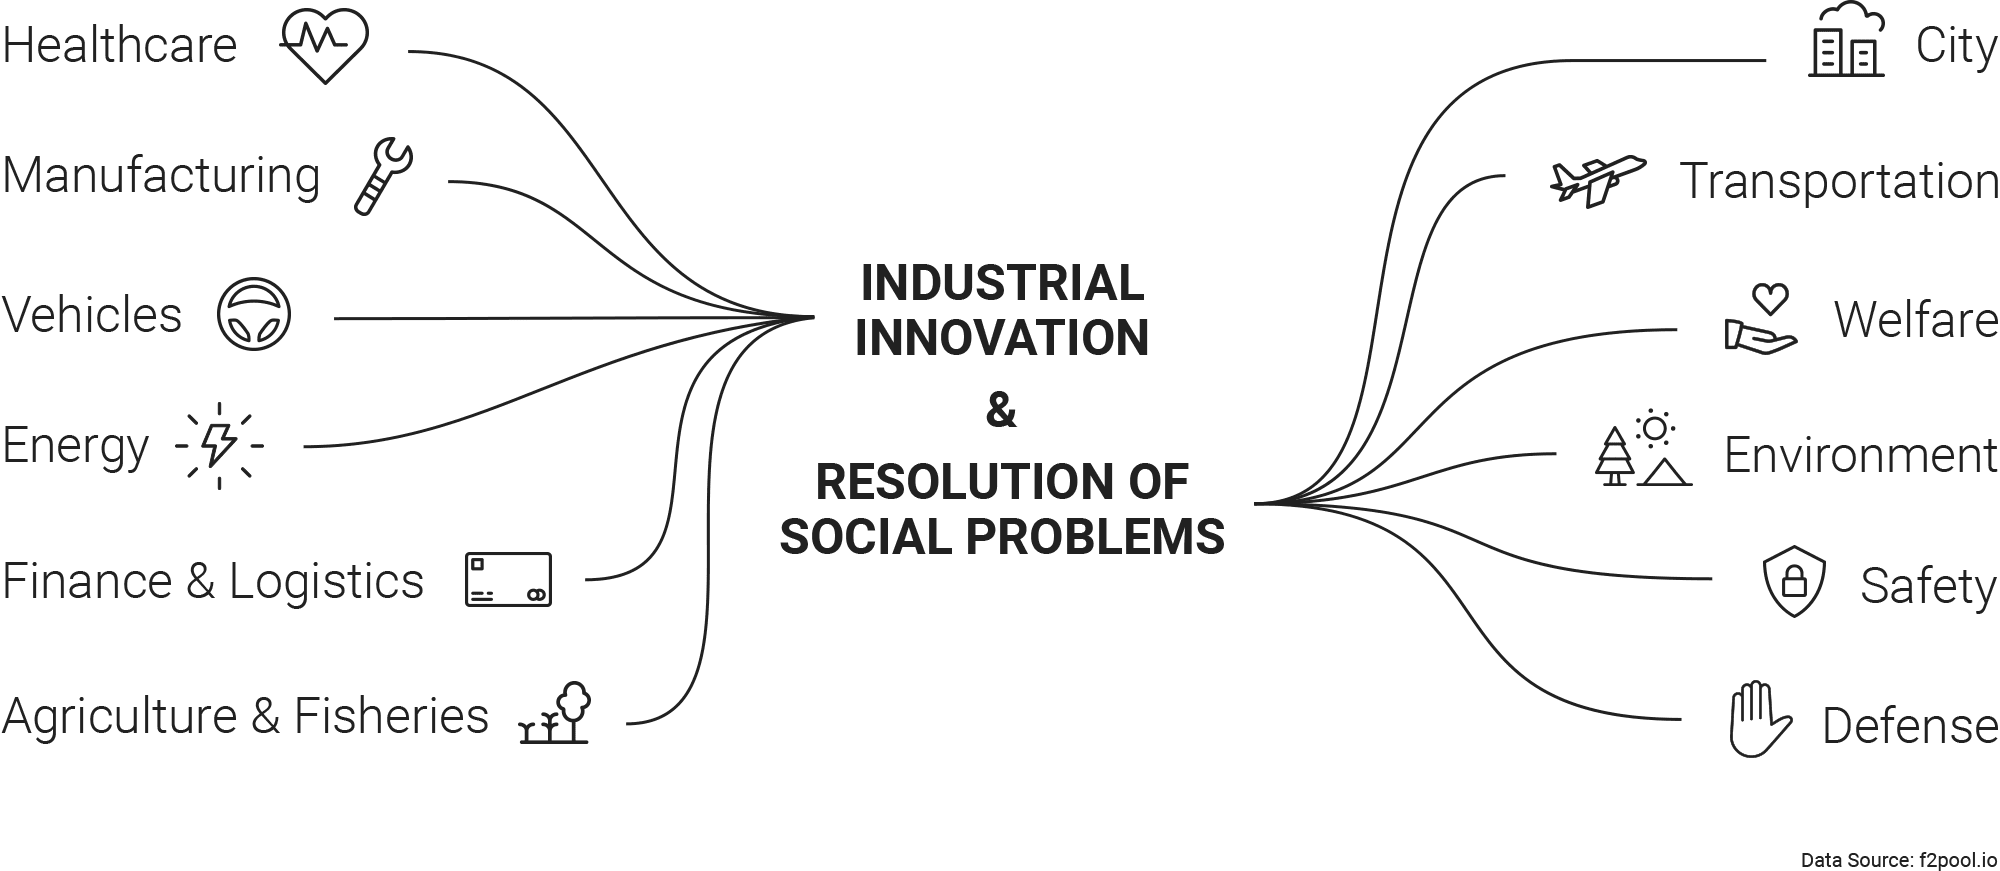 Industrial Innovation and Resolution of Social Problems